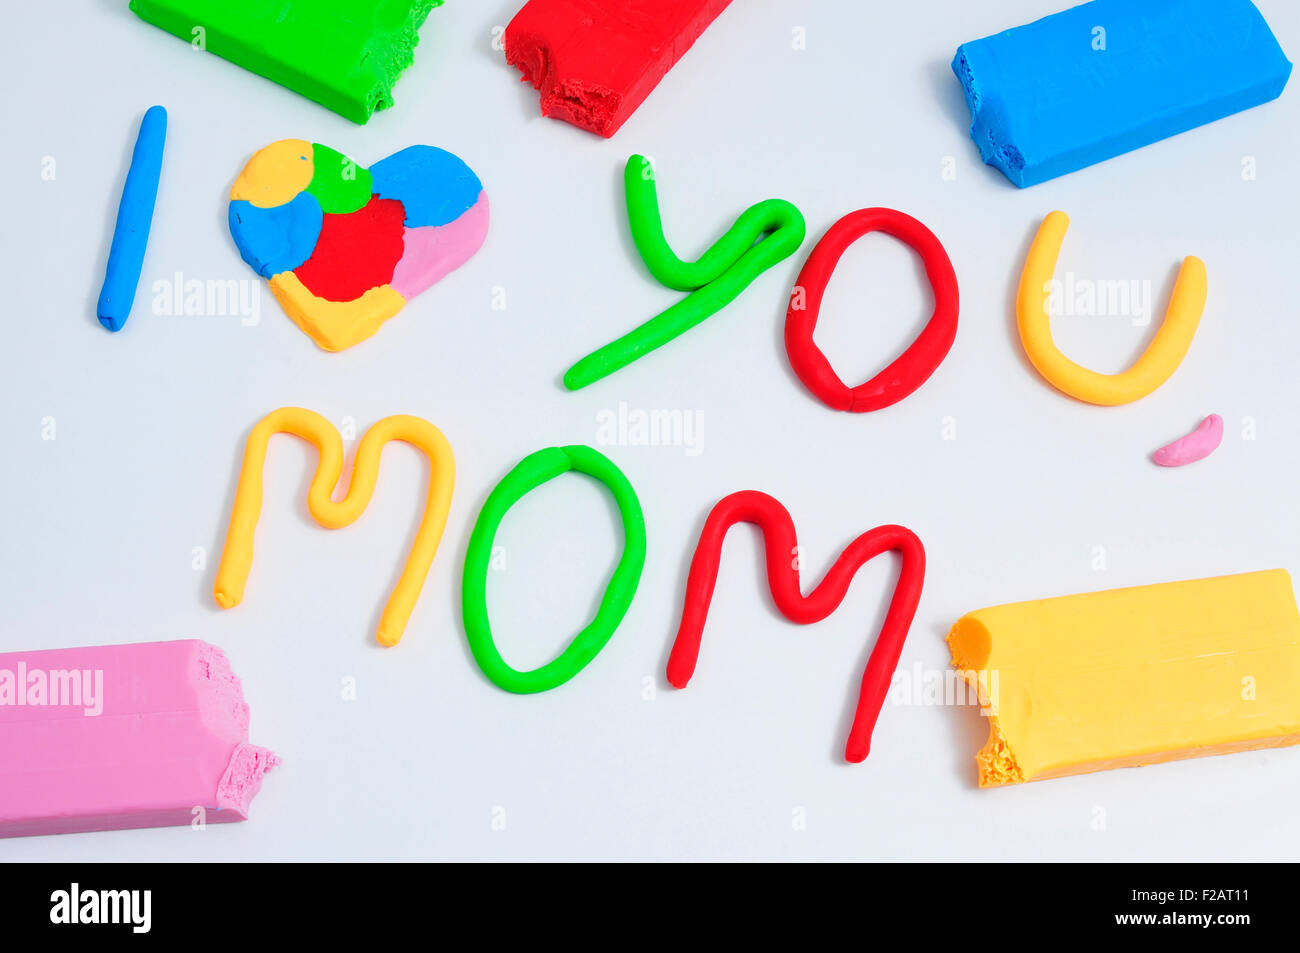 the sentence I love you mom, made in modeling clay of different colors - Stock Image